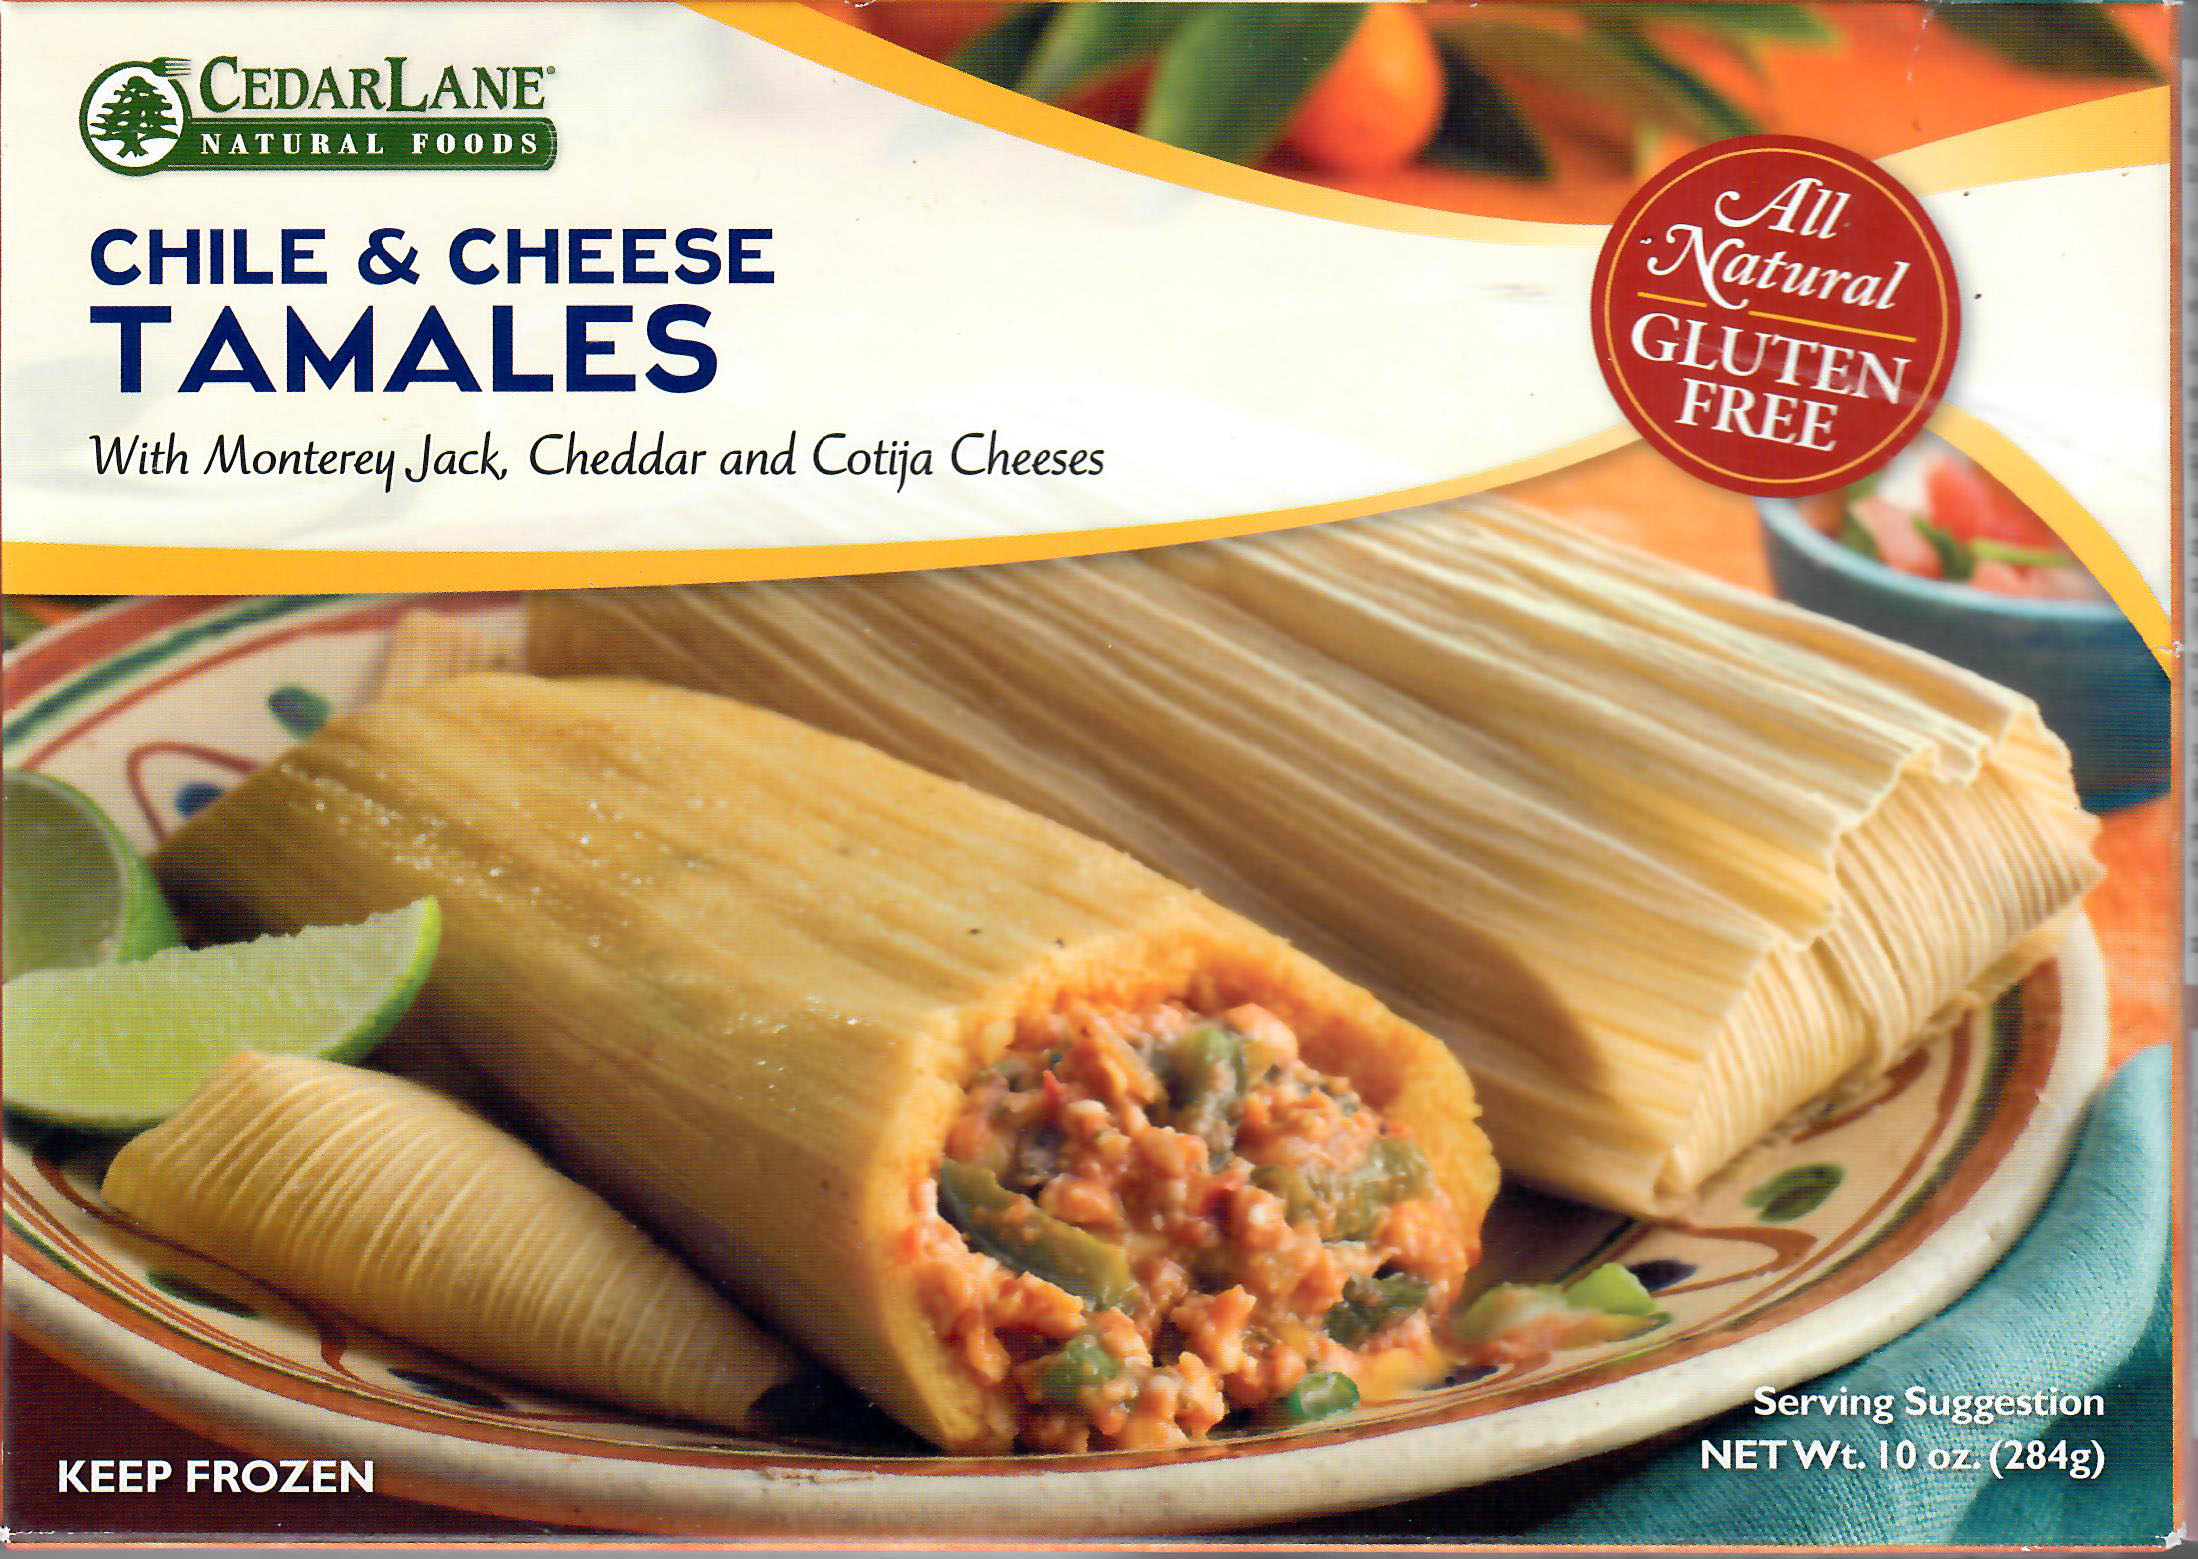 Cedarlane Chile and Cheese Tamales